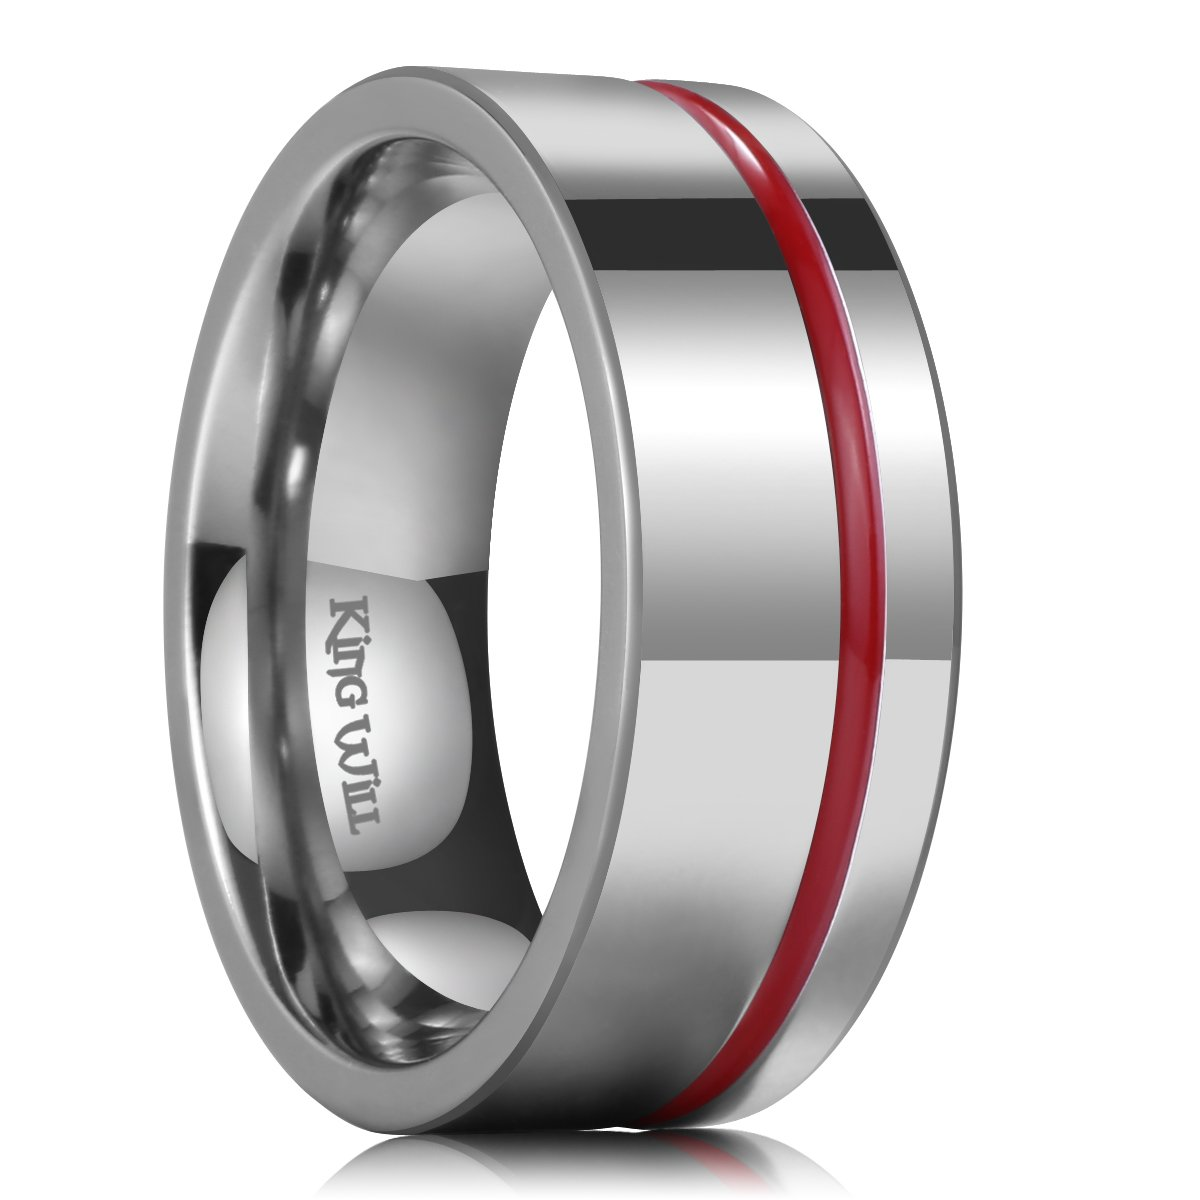 King Will Loop 8mm Thin Red Groove Silver Titanium Wedding Ring Band Pipe Cut Comfort Fit OY-TRM019